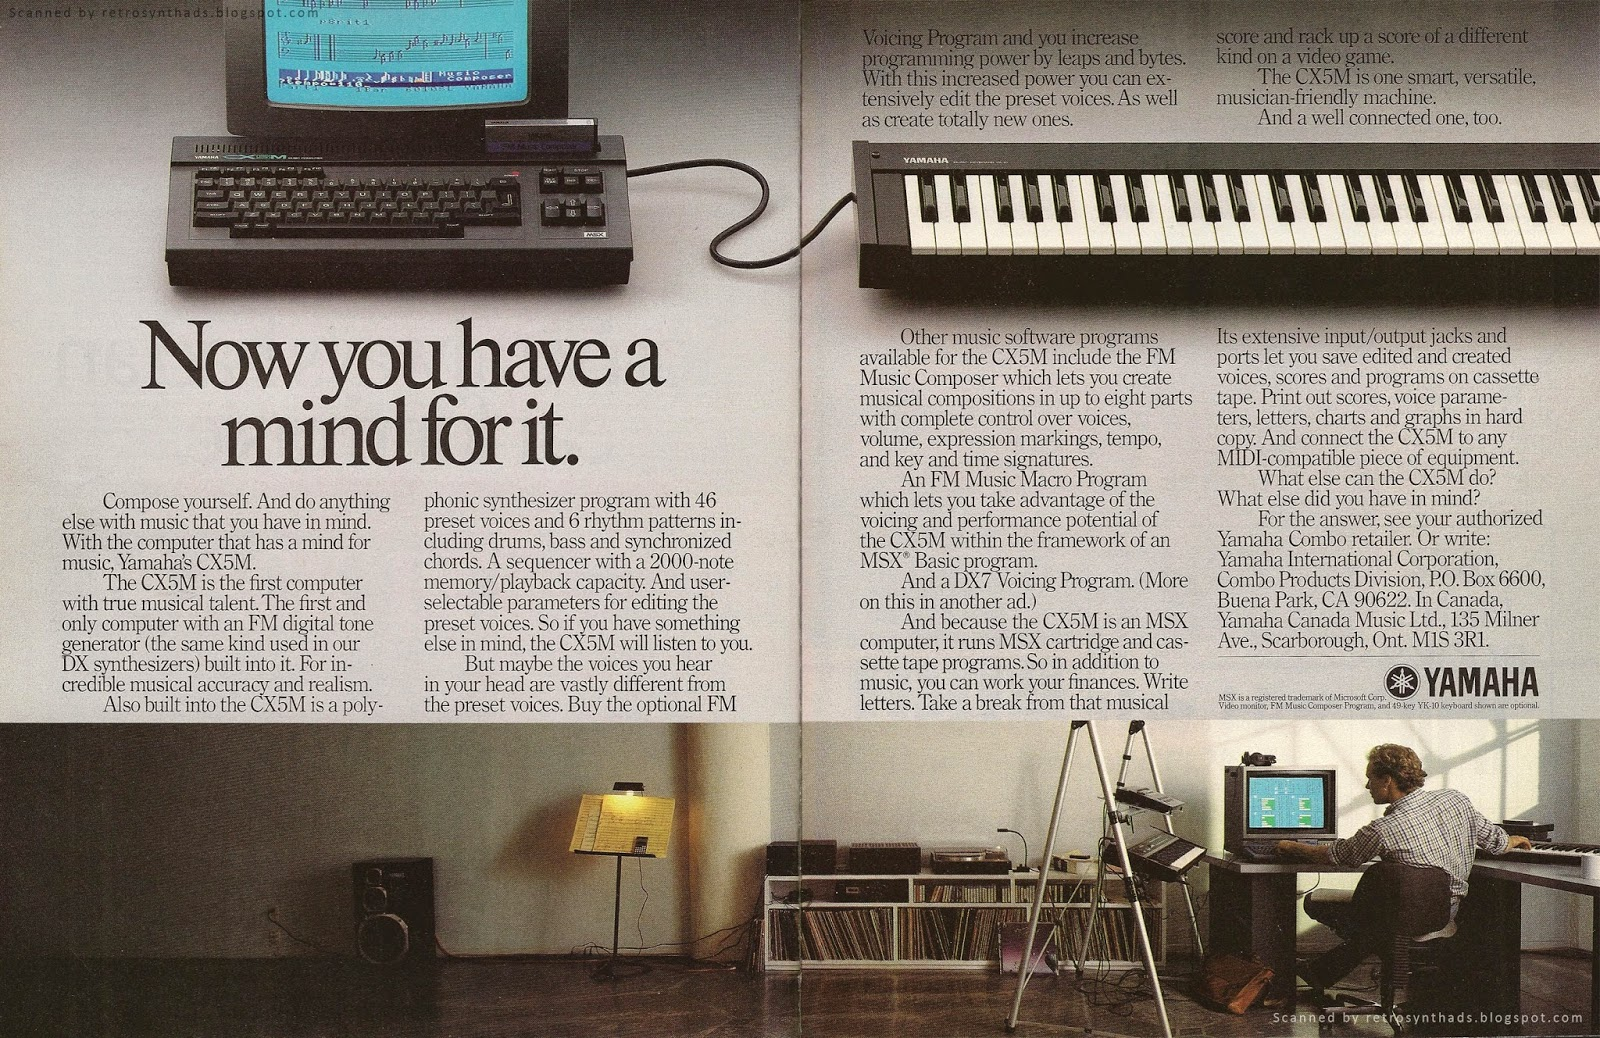 http://retrosynthads.blogspot.ca/2014/06/yamaha-cx5m-music-computer-youve-always.html